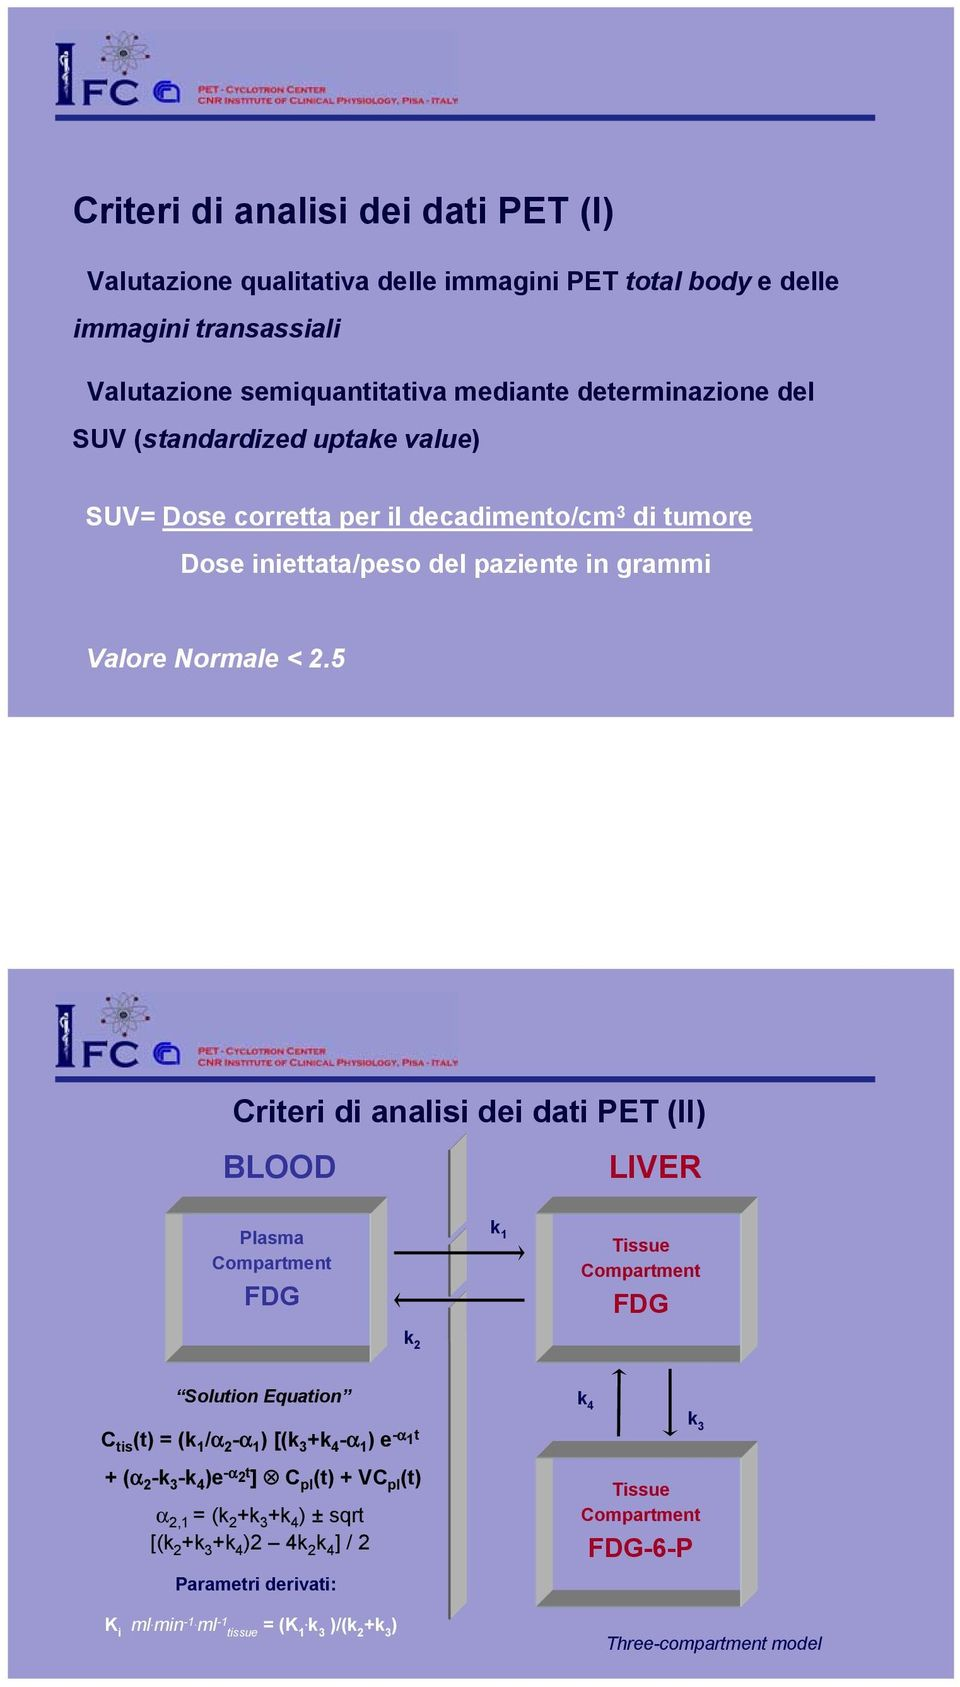 5 Criteri di analisi dei dati PET (II) BLOOD LIVER Plasma Compartment FDG k 1 Tissue Compartment FDG k 2 Solution Equation C tis (t) = (k 1 /α 2 -α 1 ) [(k 3 +k 4 -α 1 ) e -α 1 t + (α 2